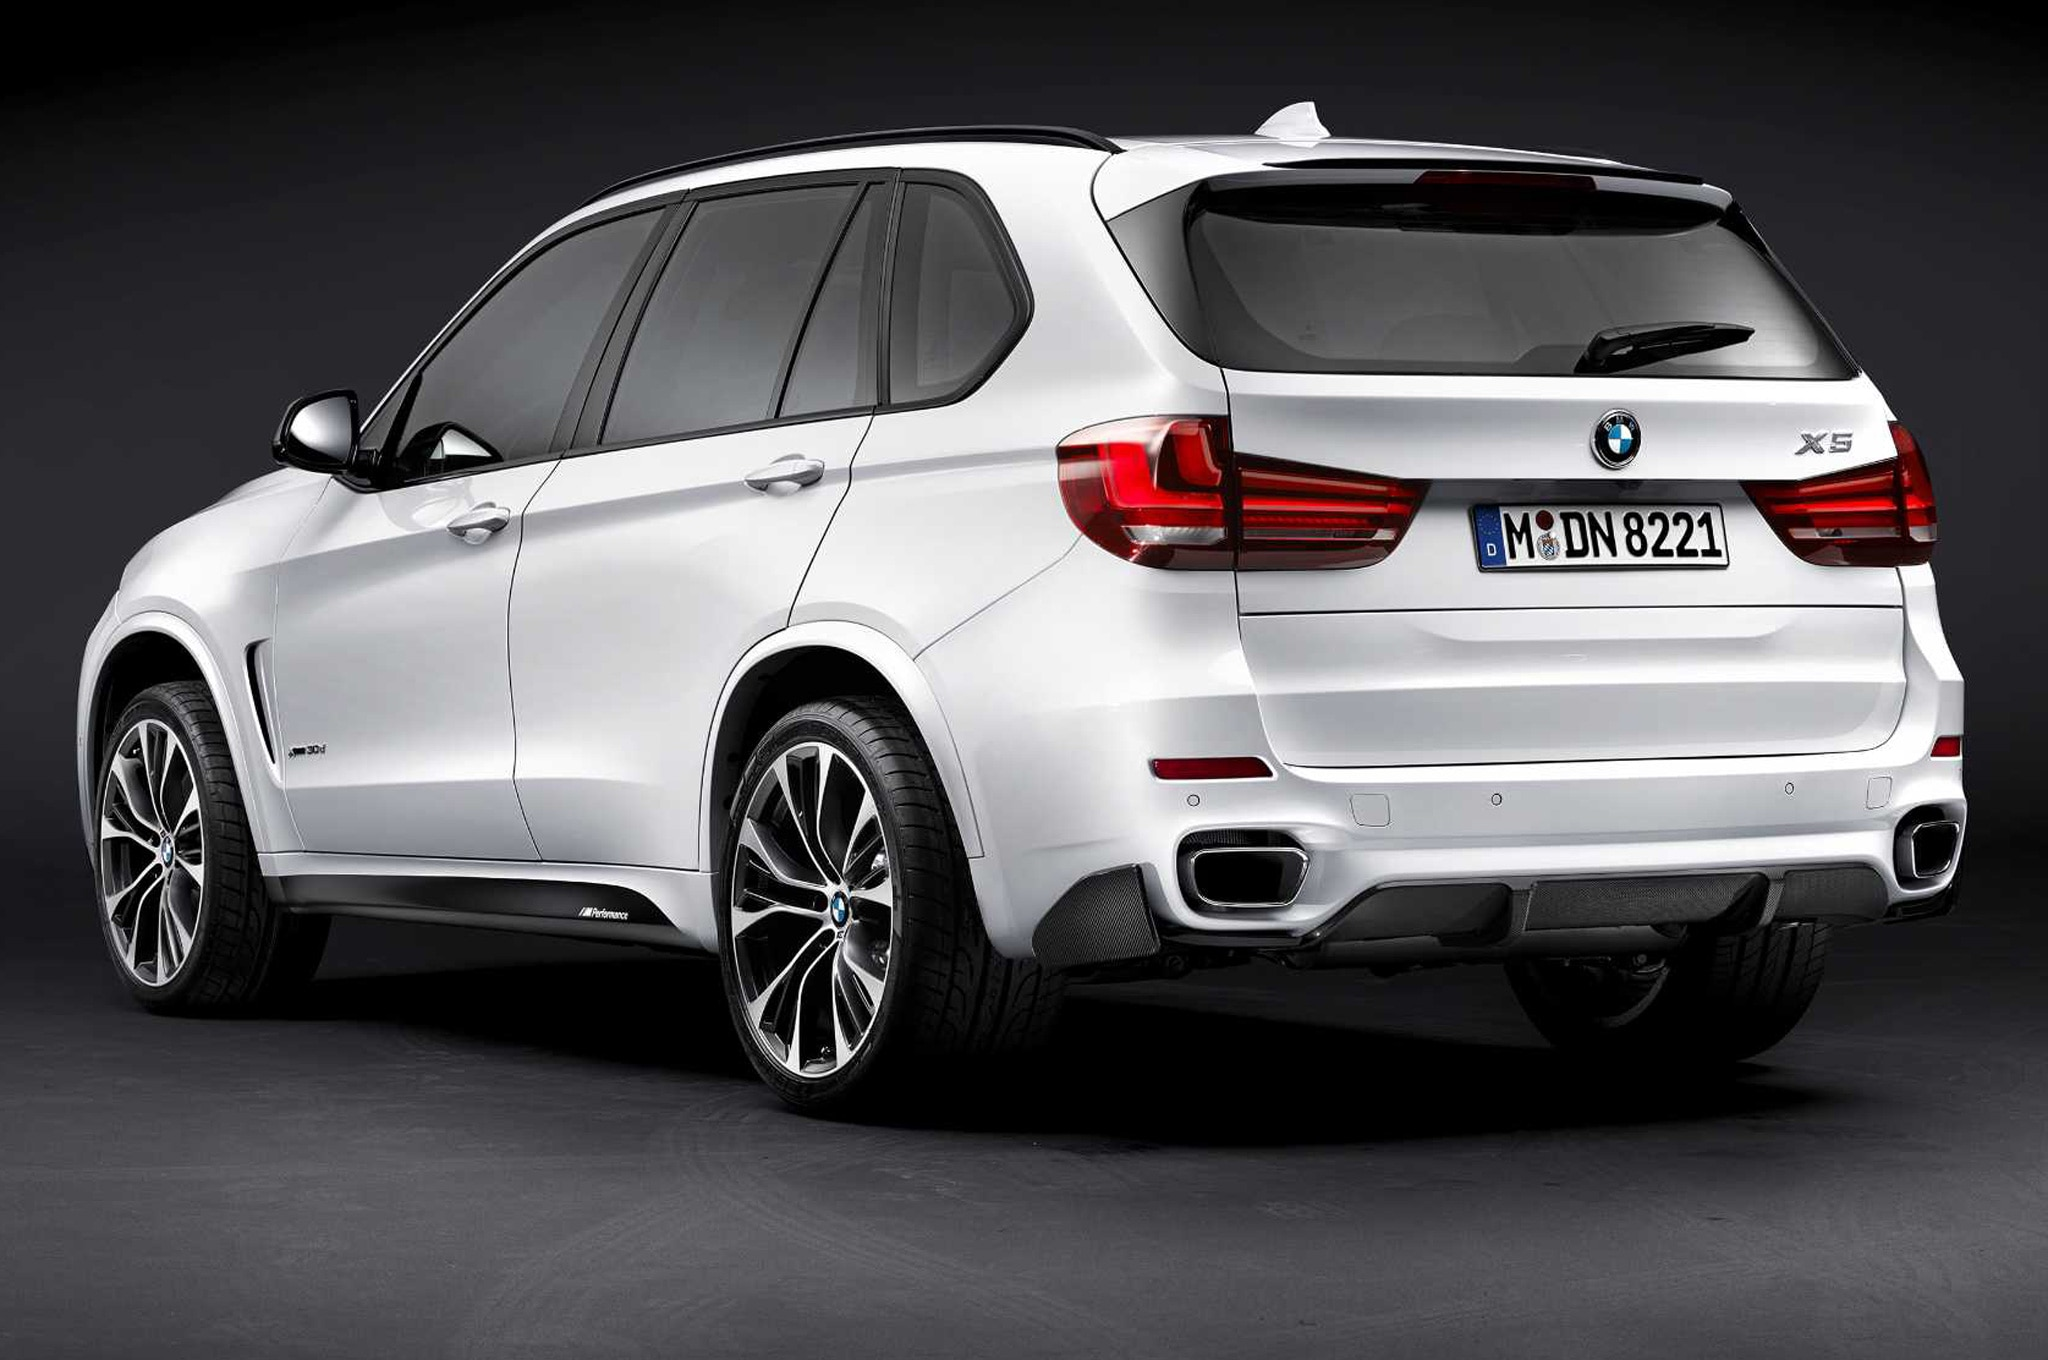 2014 BMW X5 Available With M Performance Parts